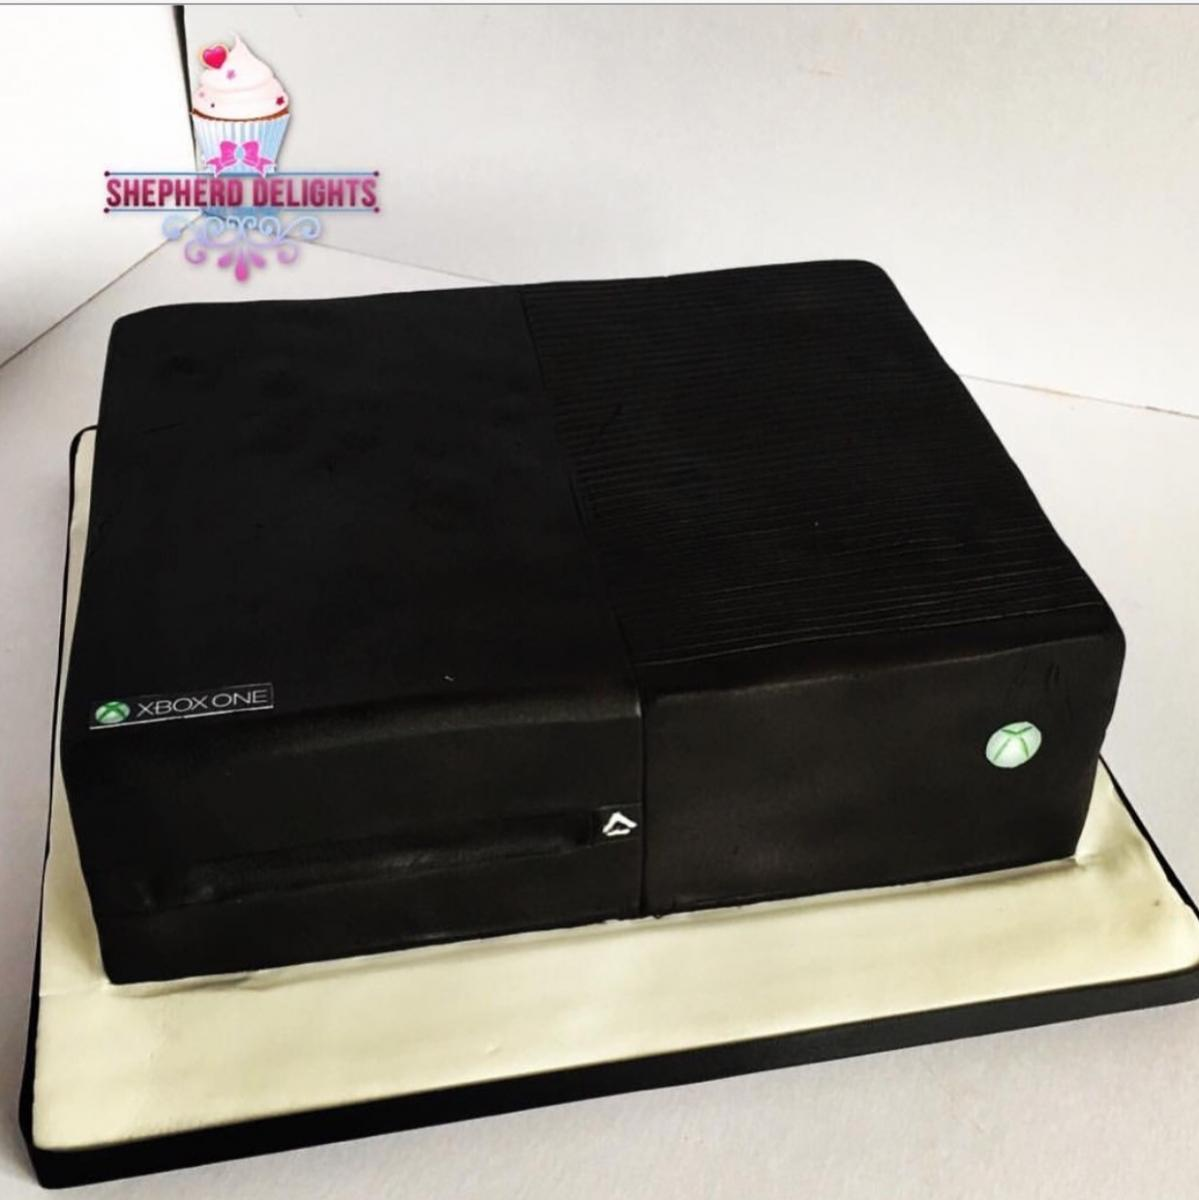 Xbox One Cake Birthday Childrens Novelty Cakes